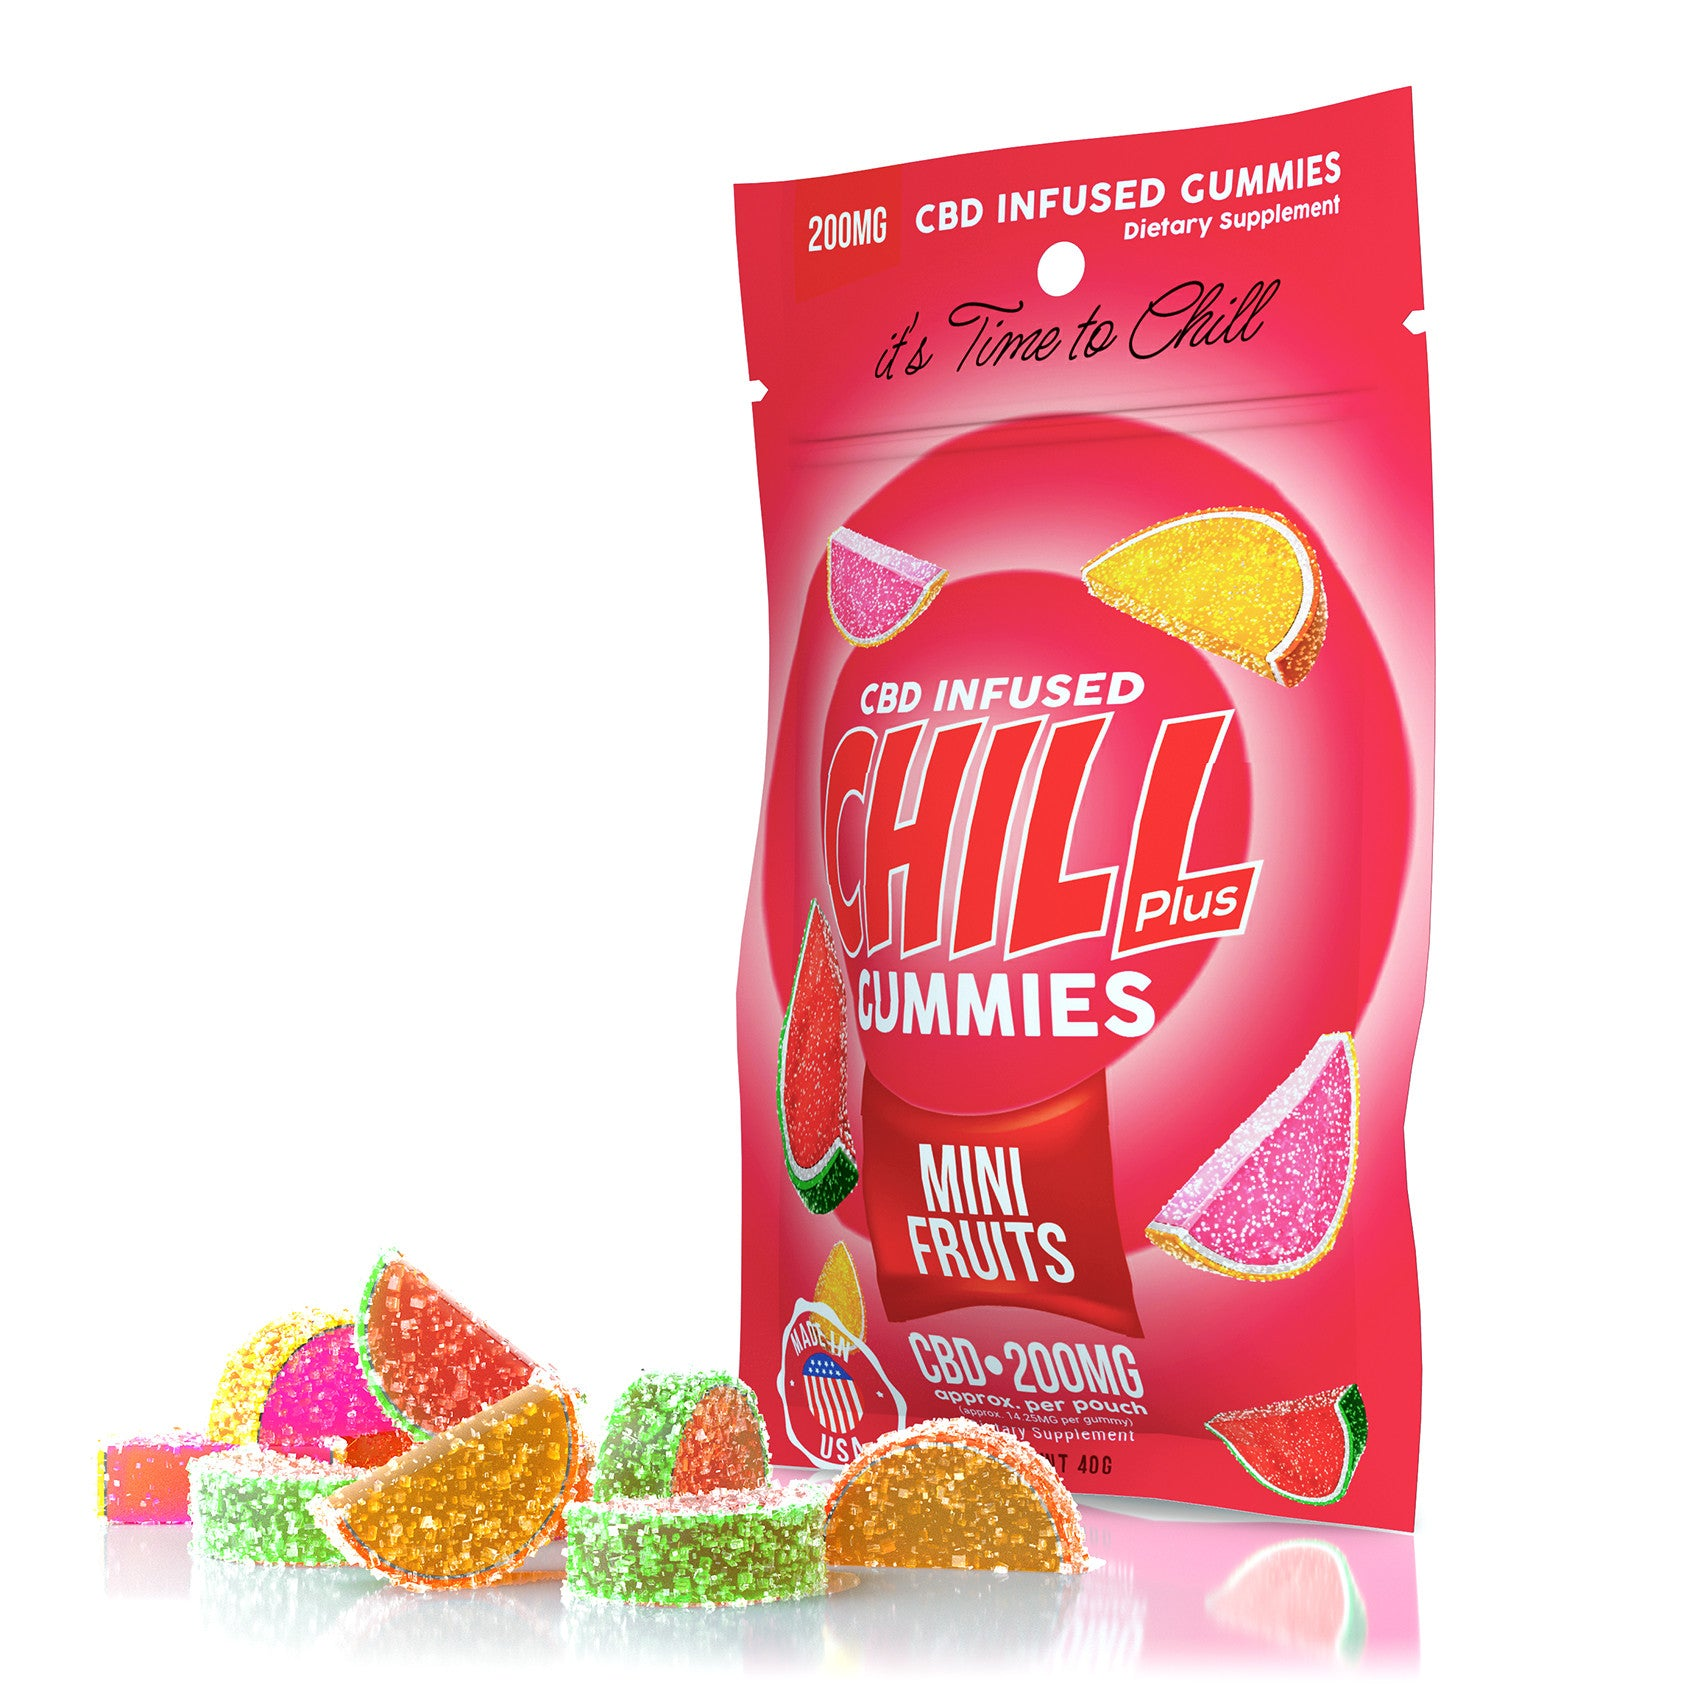 Mini Fruit - Chill Plus CBD Infused Gummies - EC Direct CBD